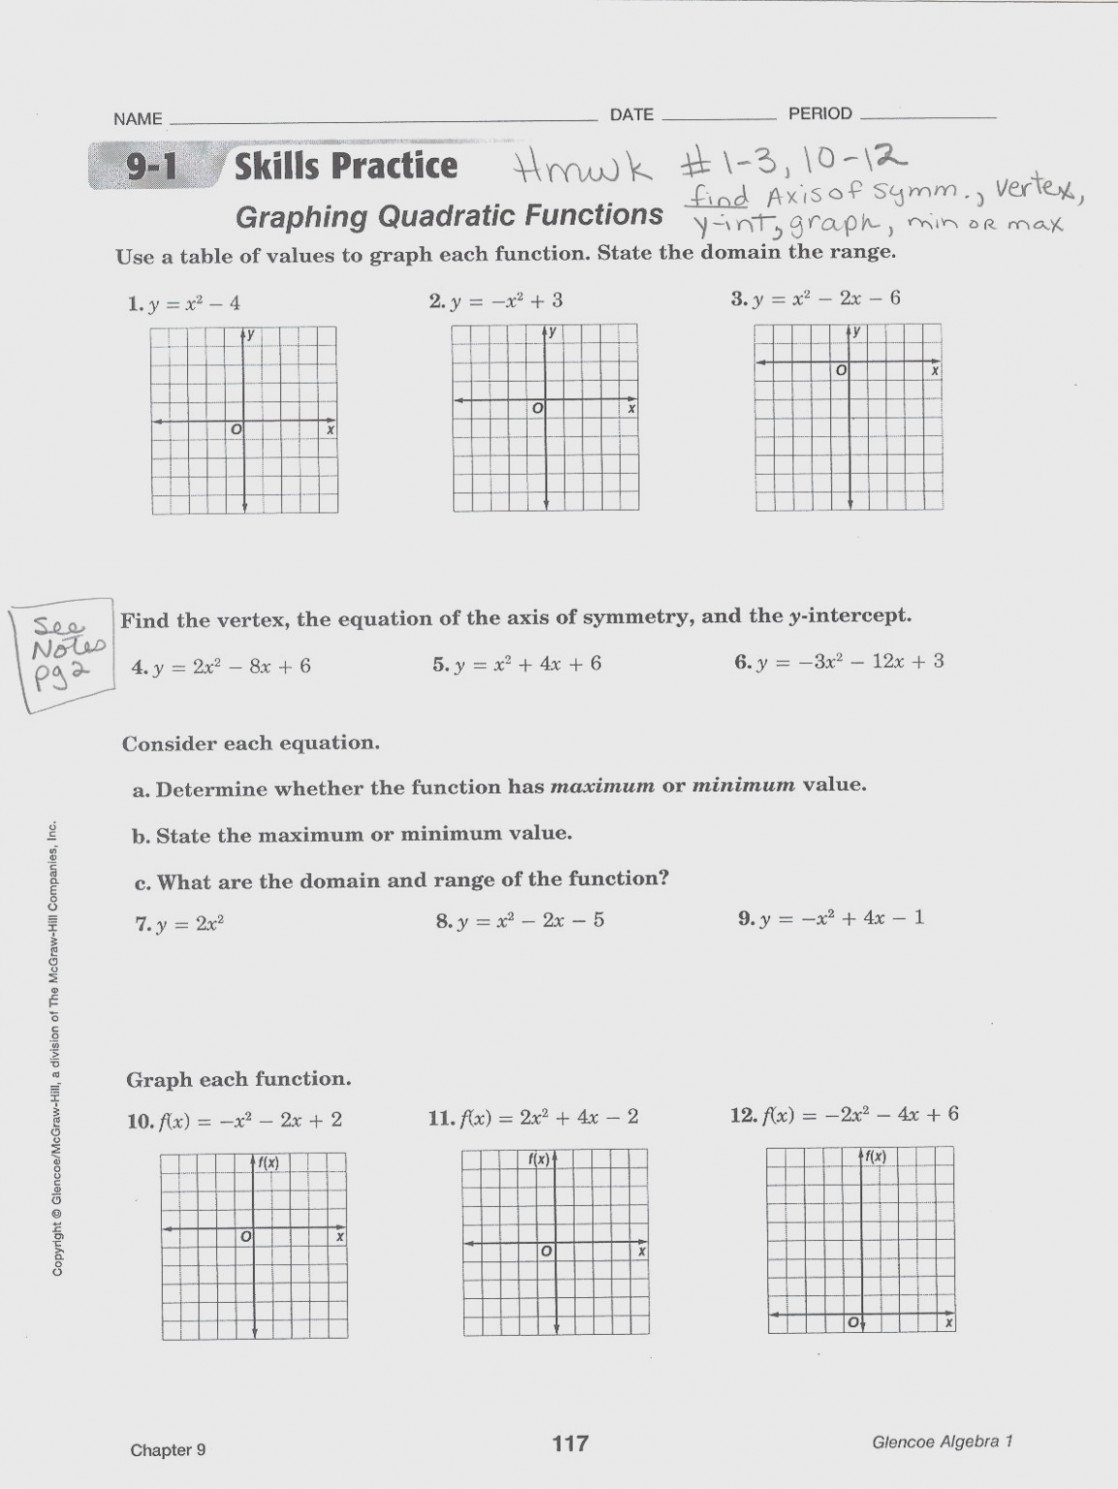 Math Worksheets Graphing Quadratic Equations 11 – Myscres  – Form In Practice Worksheet Graphing Quadratic Functions In Vertex Form Answer Key